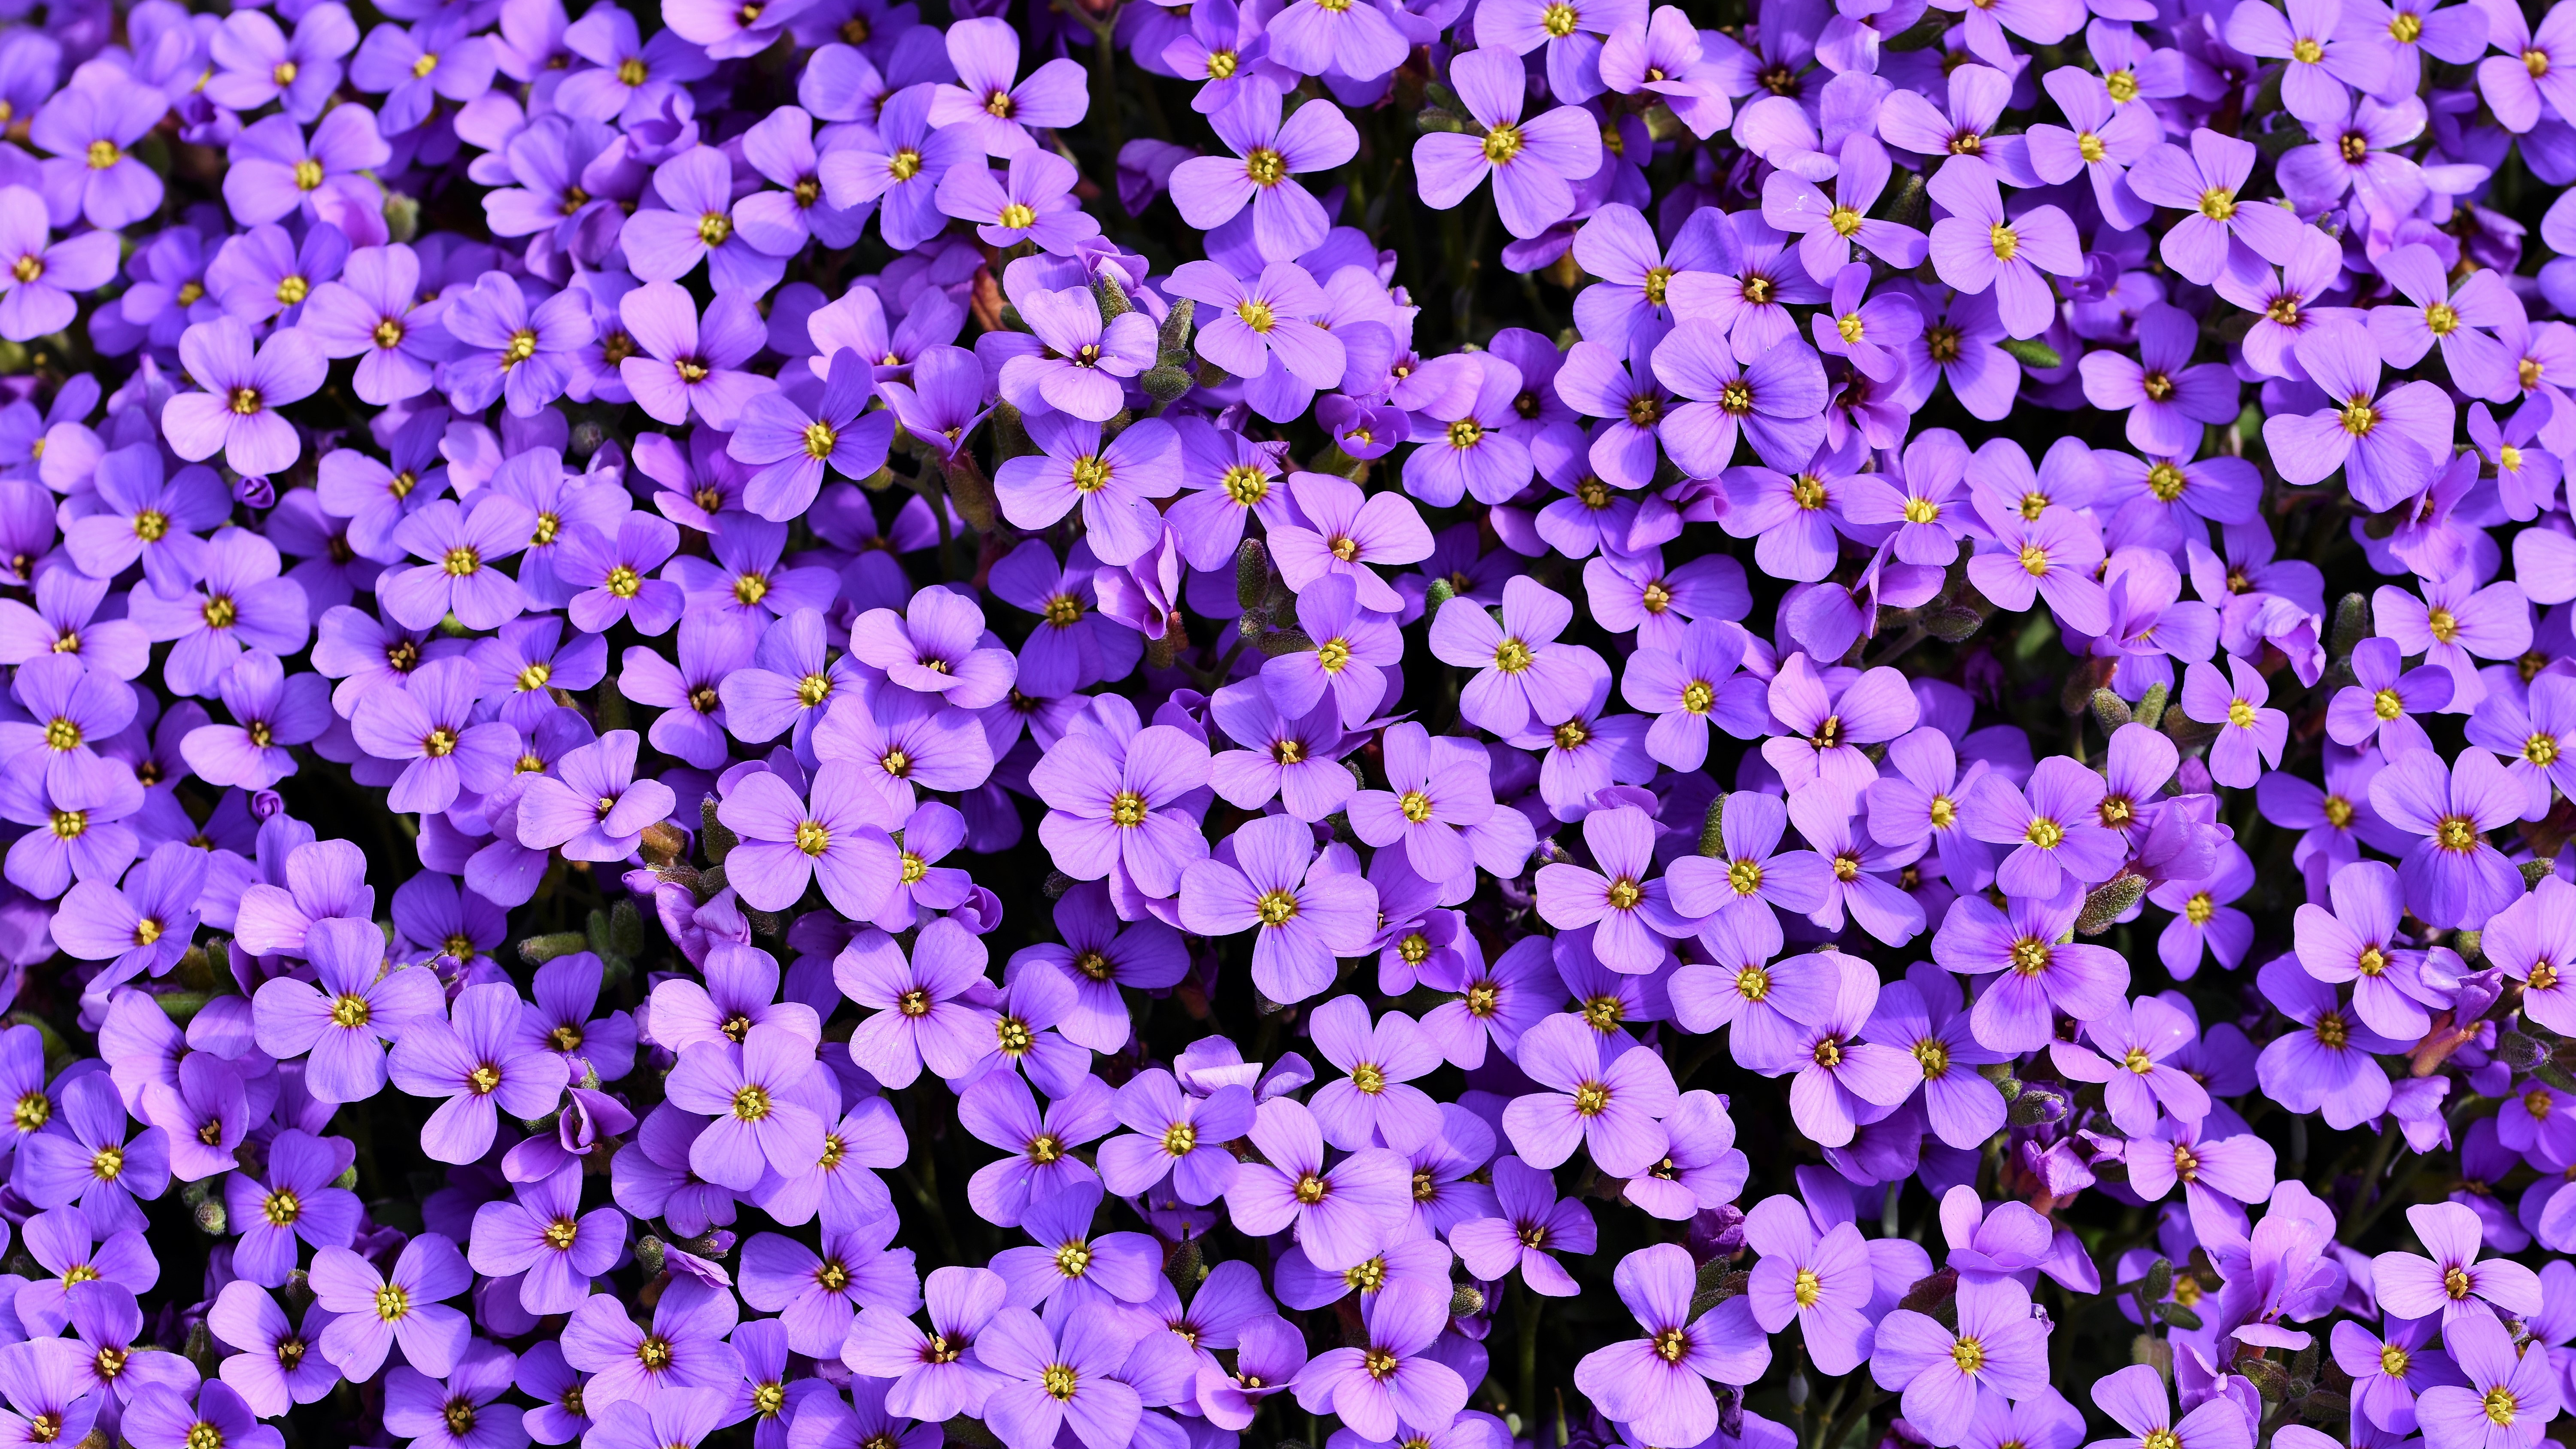 purple flowers background 5k 1606577835 - Purple Flowers Background 5k - Purple Flowers Background 5k wallpapers